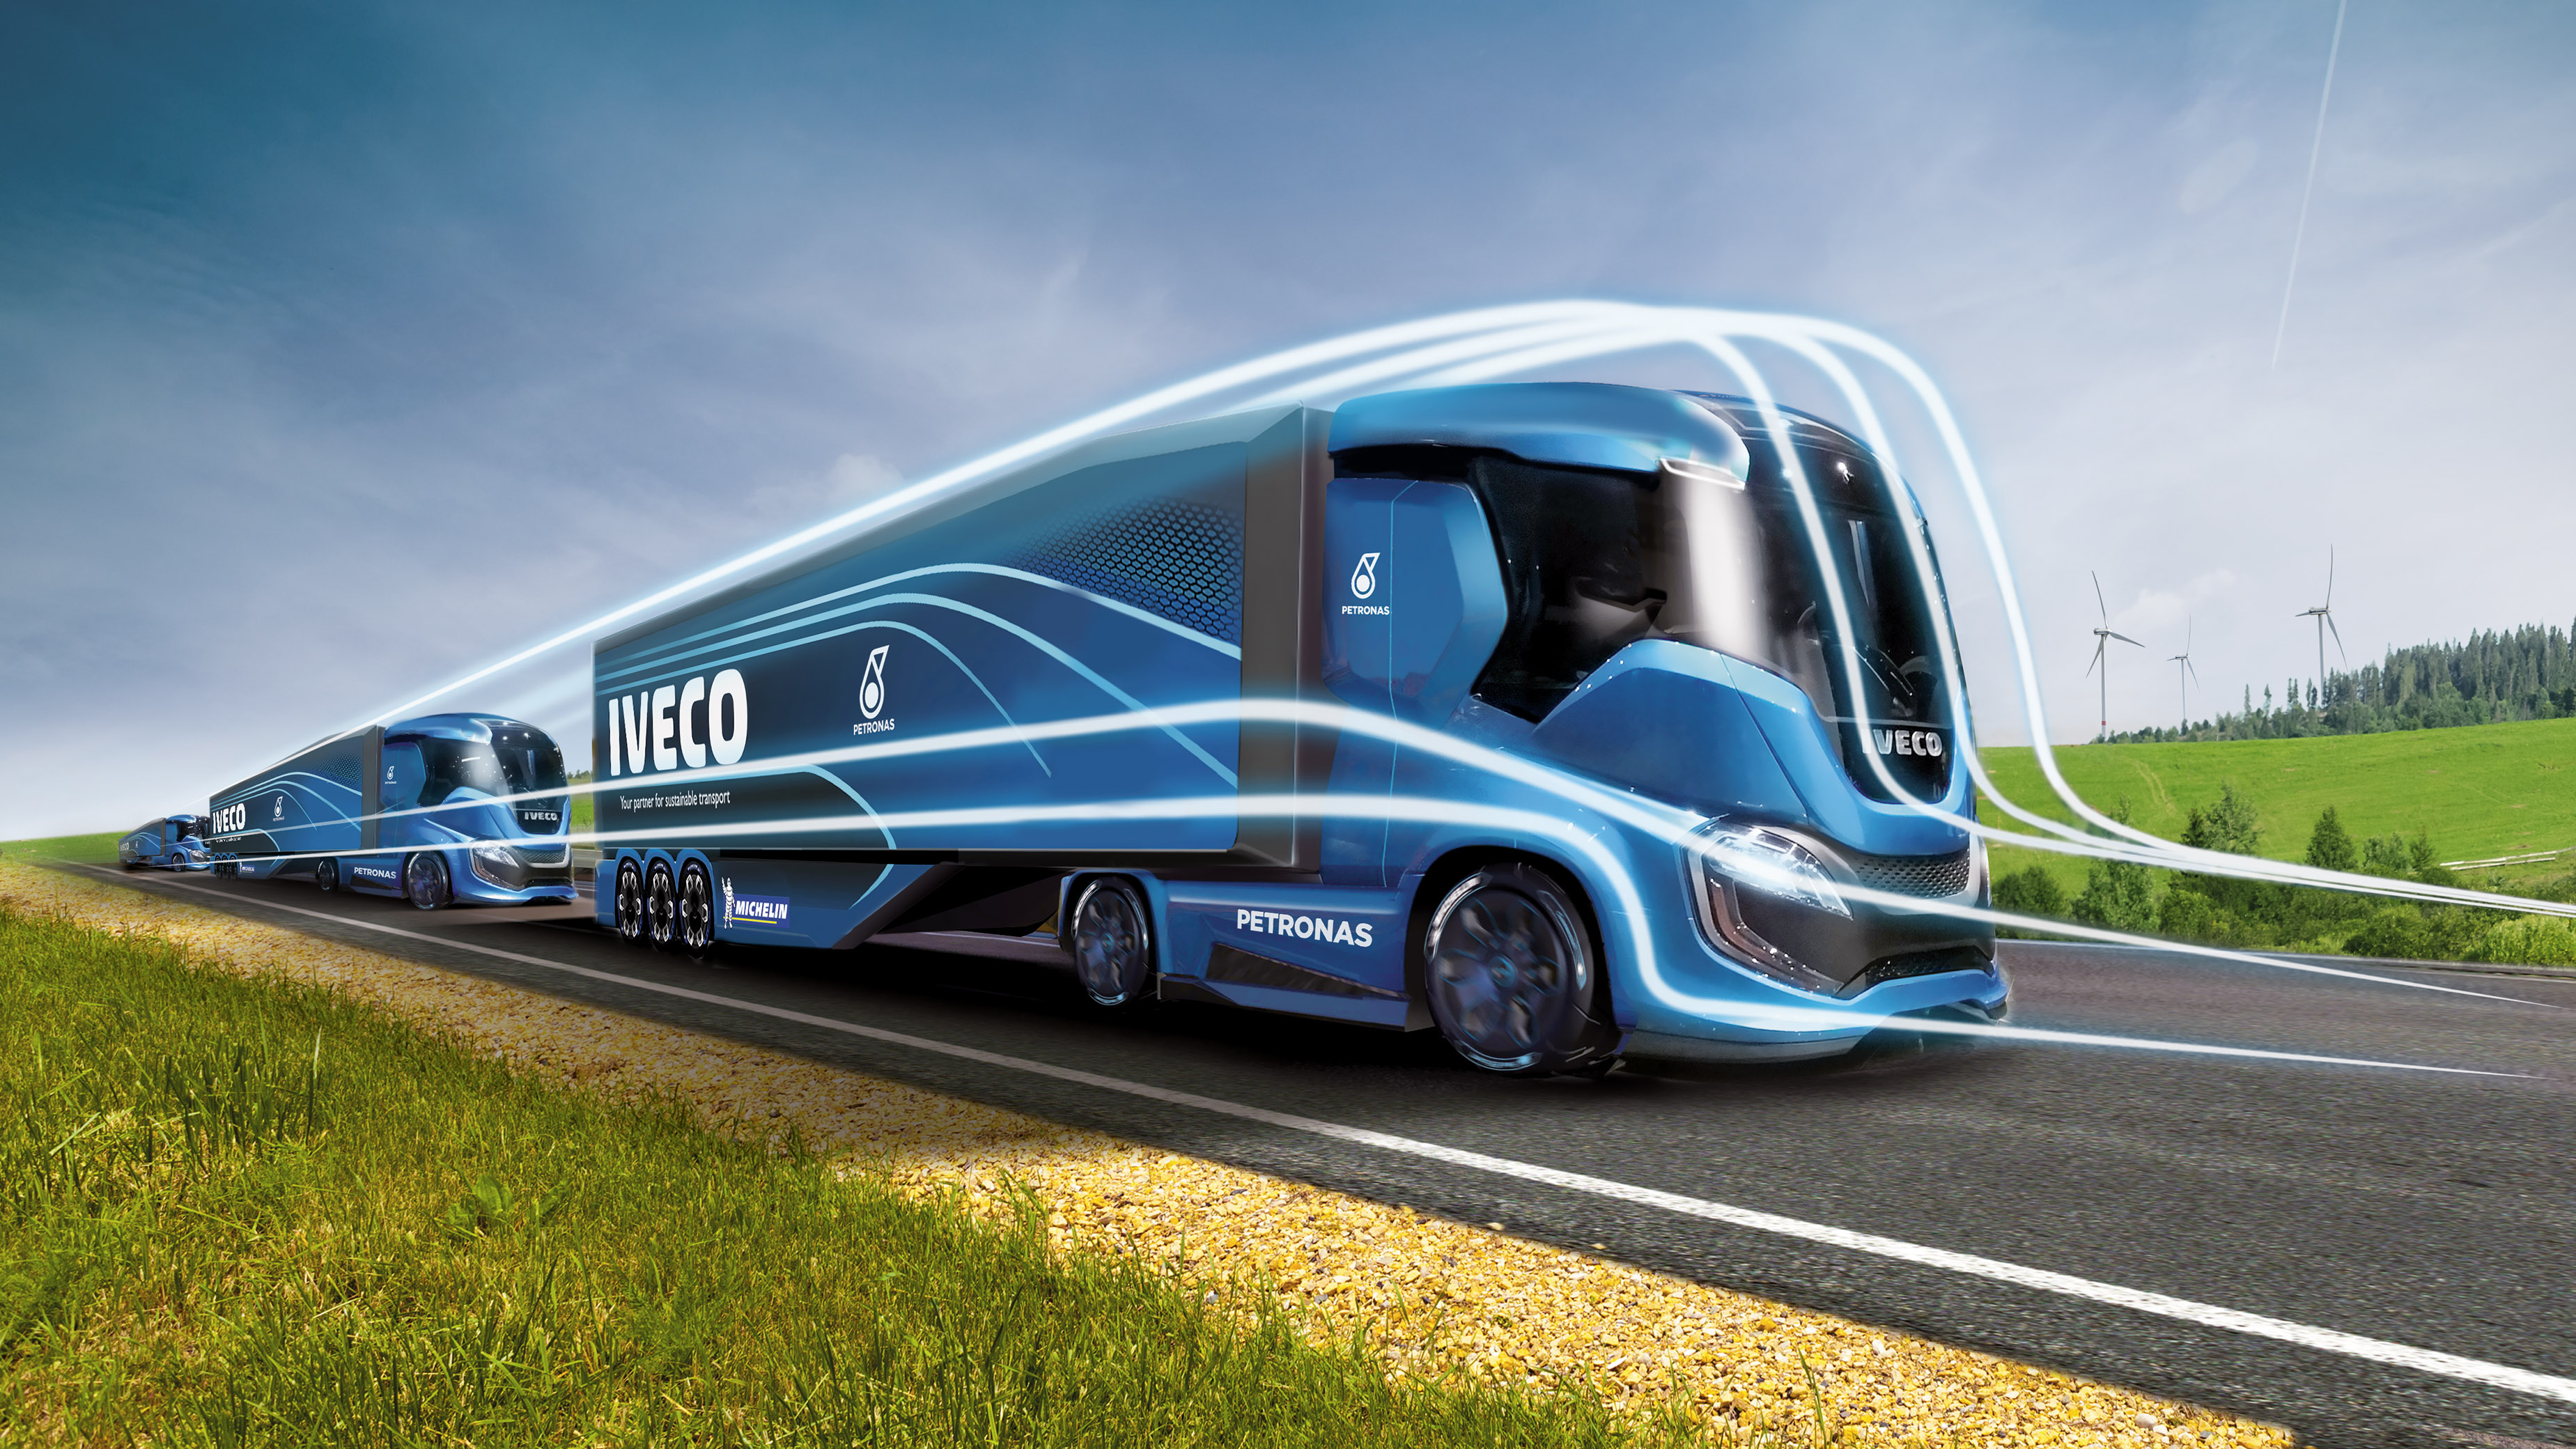 Iveco, a CNH Industrial brand, presents its Z TRUCK at the 2016 IAA Show in Hannover, Germany